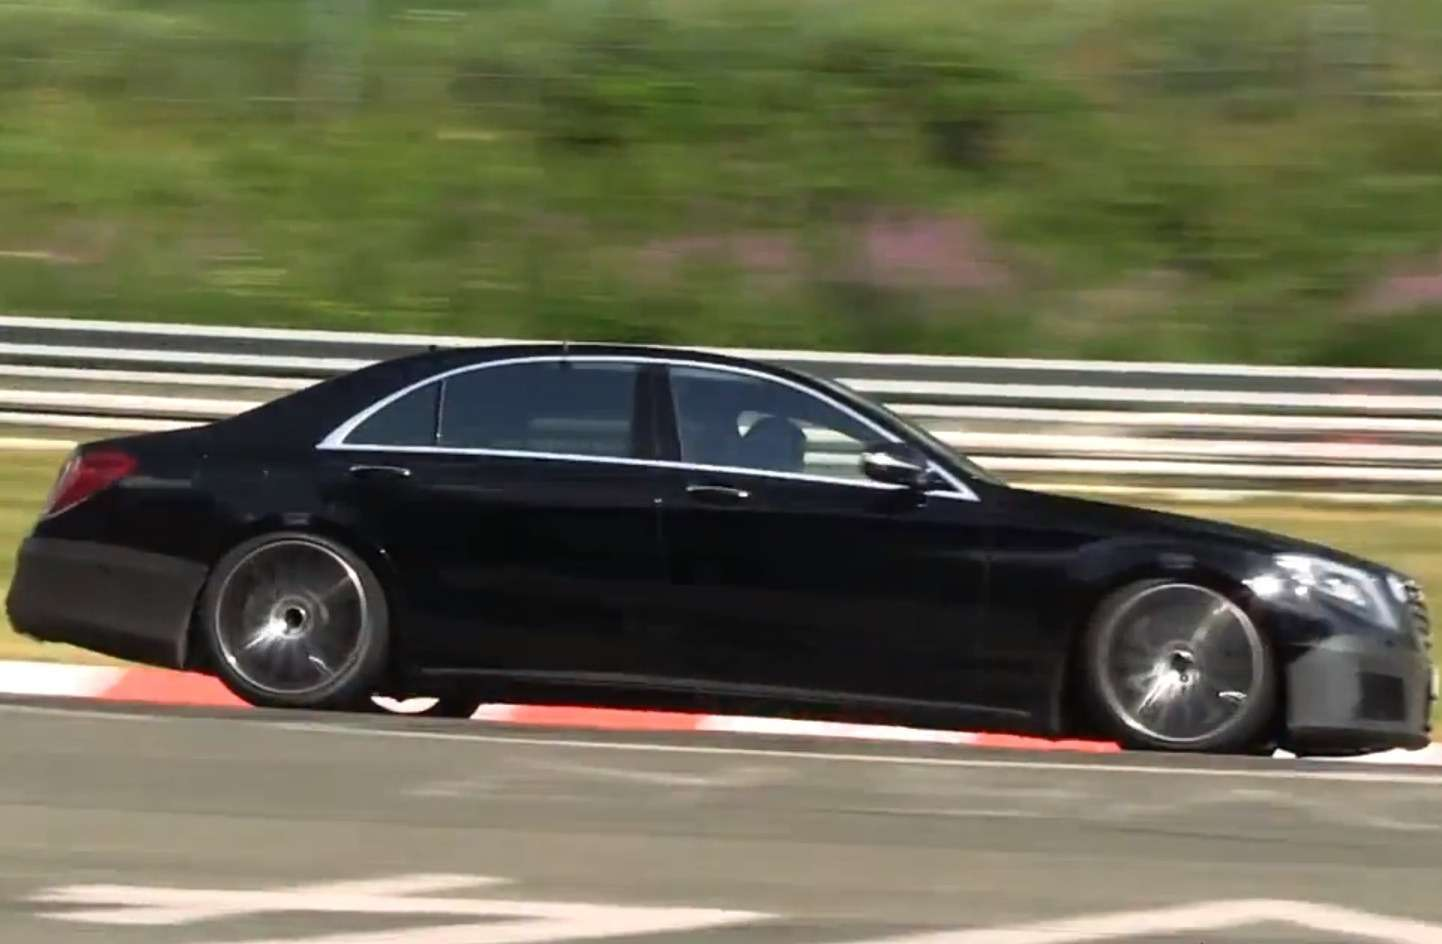 Mercedes Benz S 65 AMG test prototype no copyright